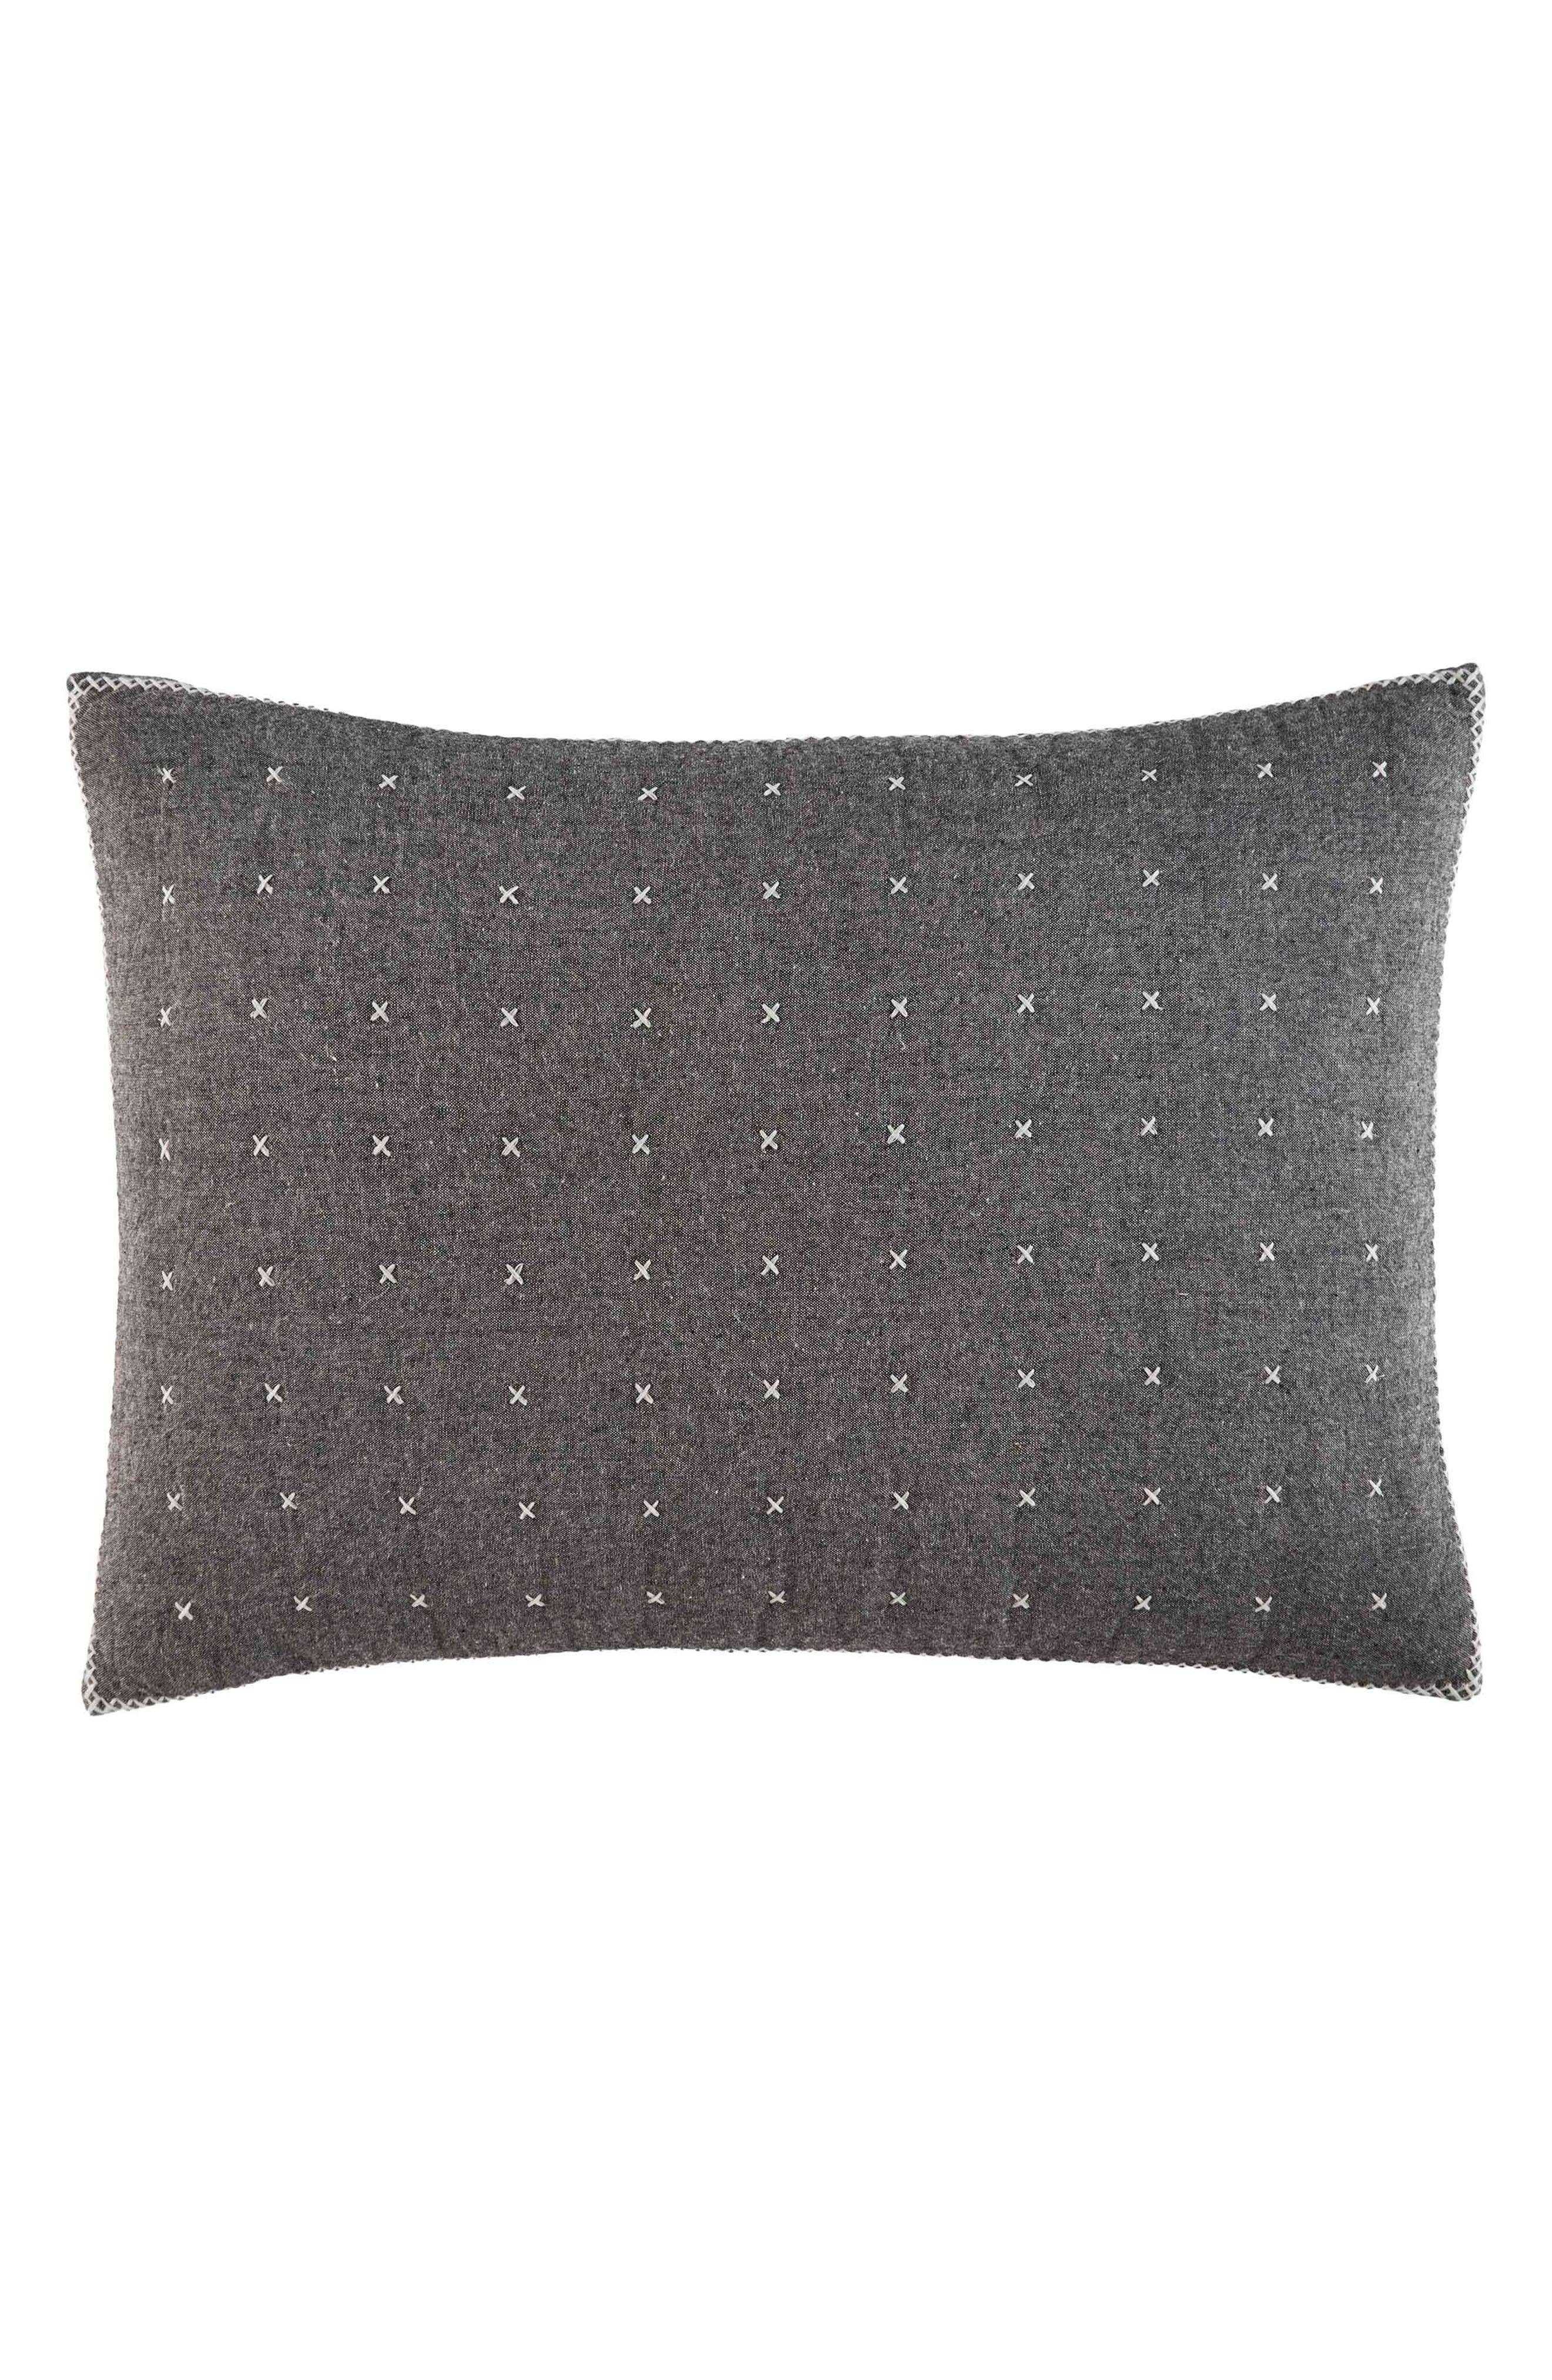 Greystone Accent Pillow,                             Main thumbnail 1, color,                             Grey